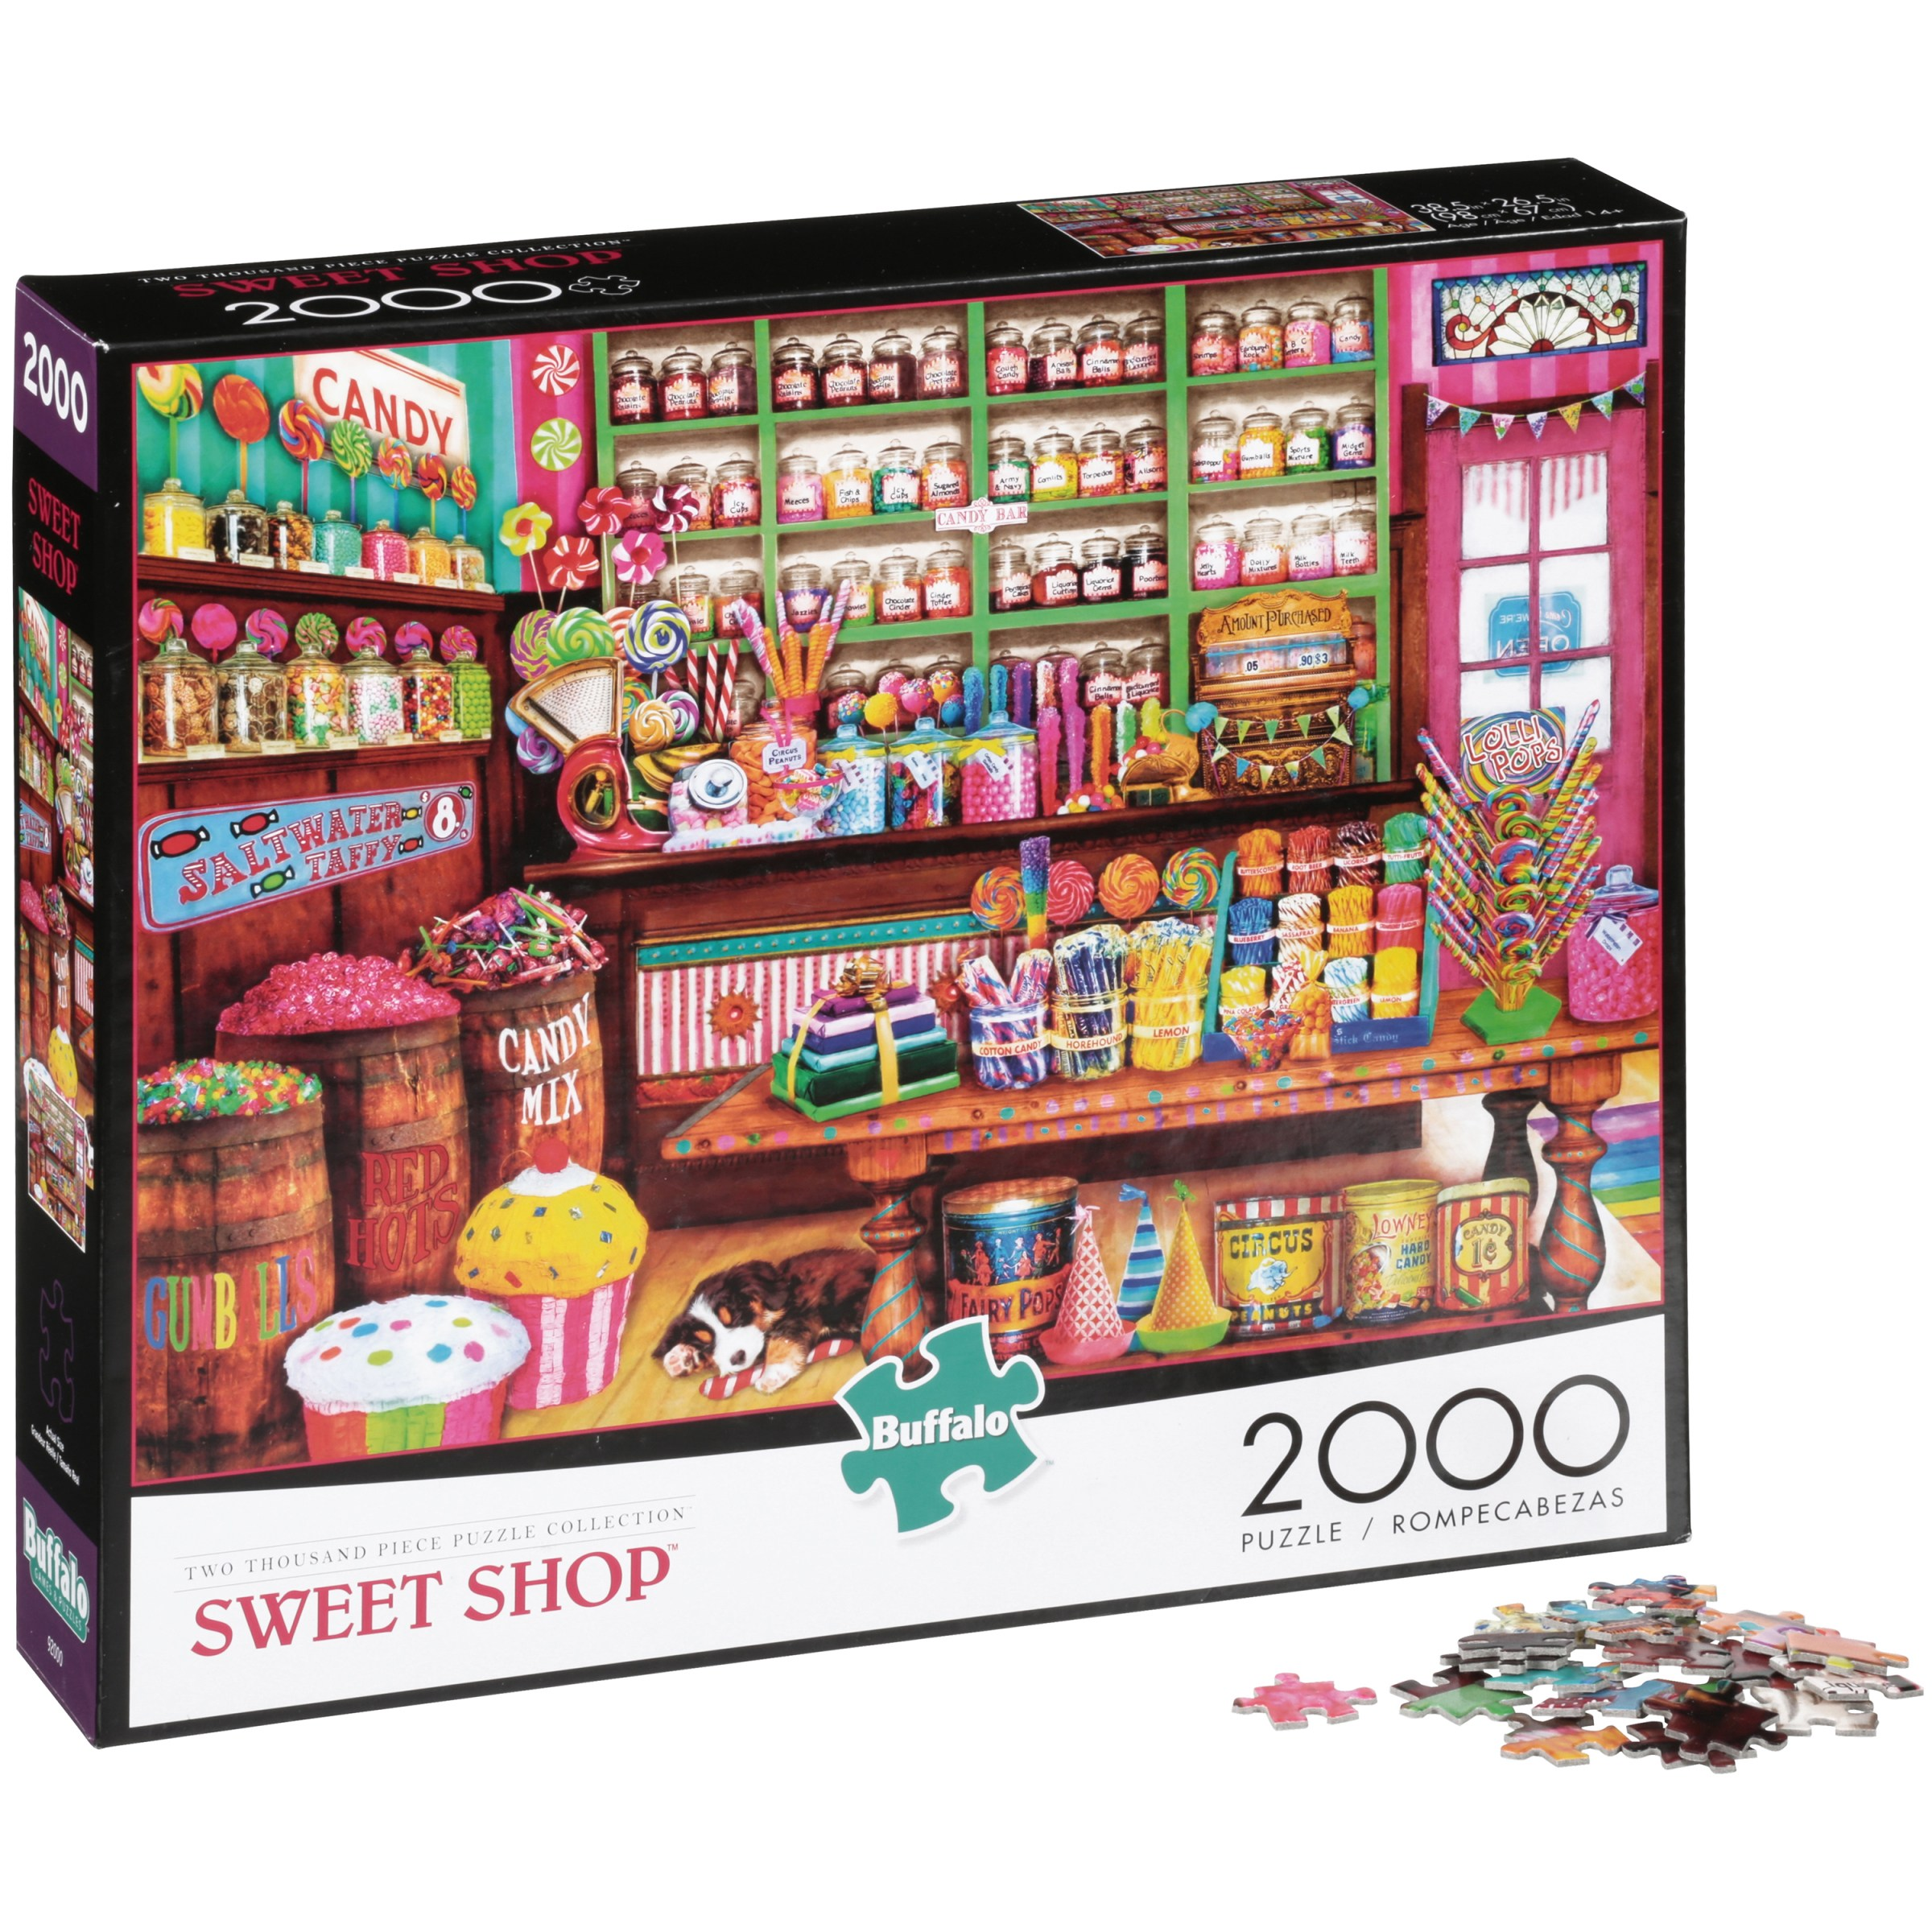 Buffalo Two Thousand Piece Puzzle Collection Sweet Shop Puzzle 2000 pc Box by Buffalo Games, Llc